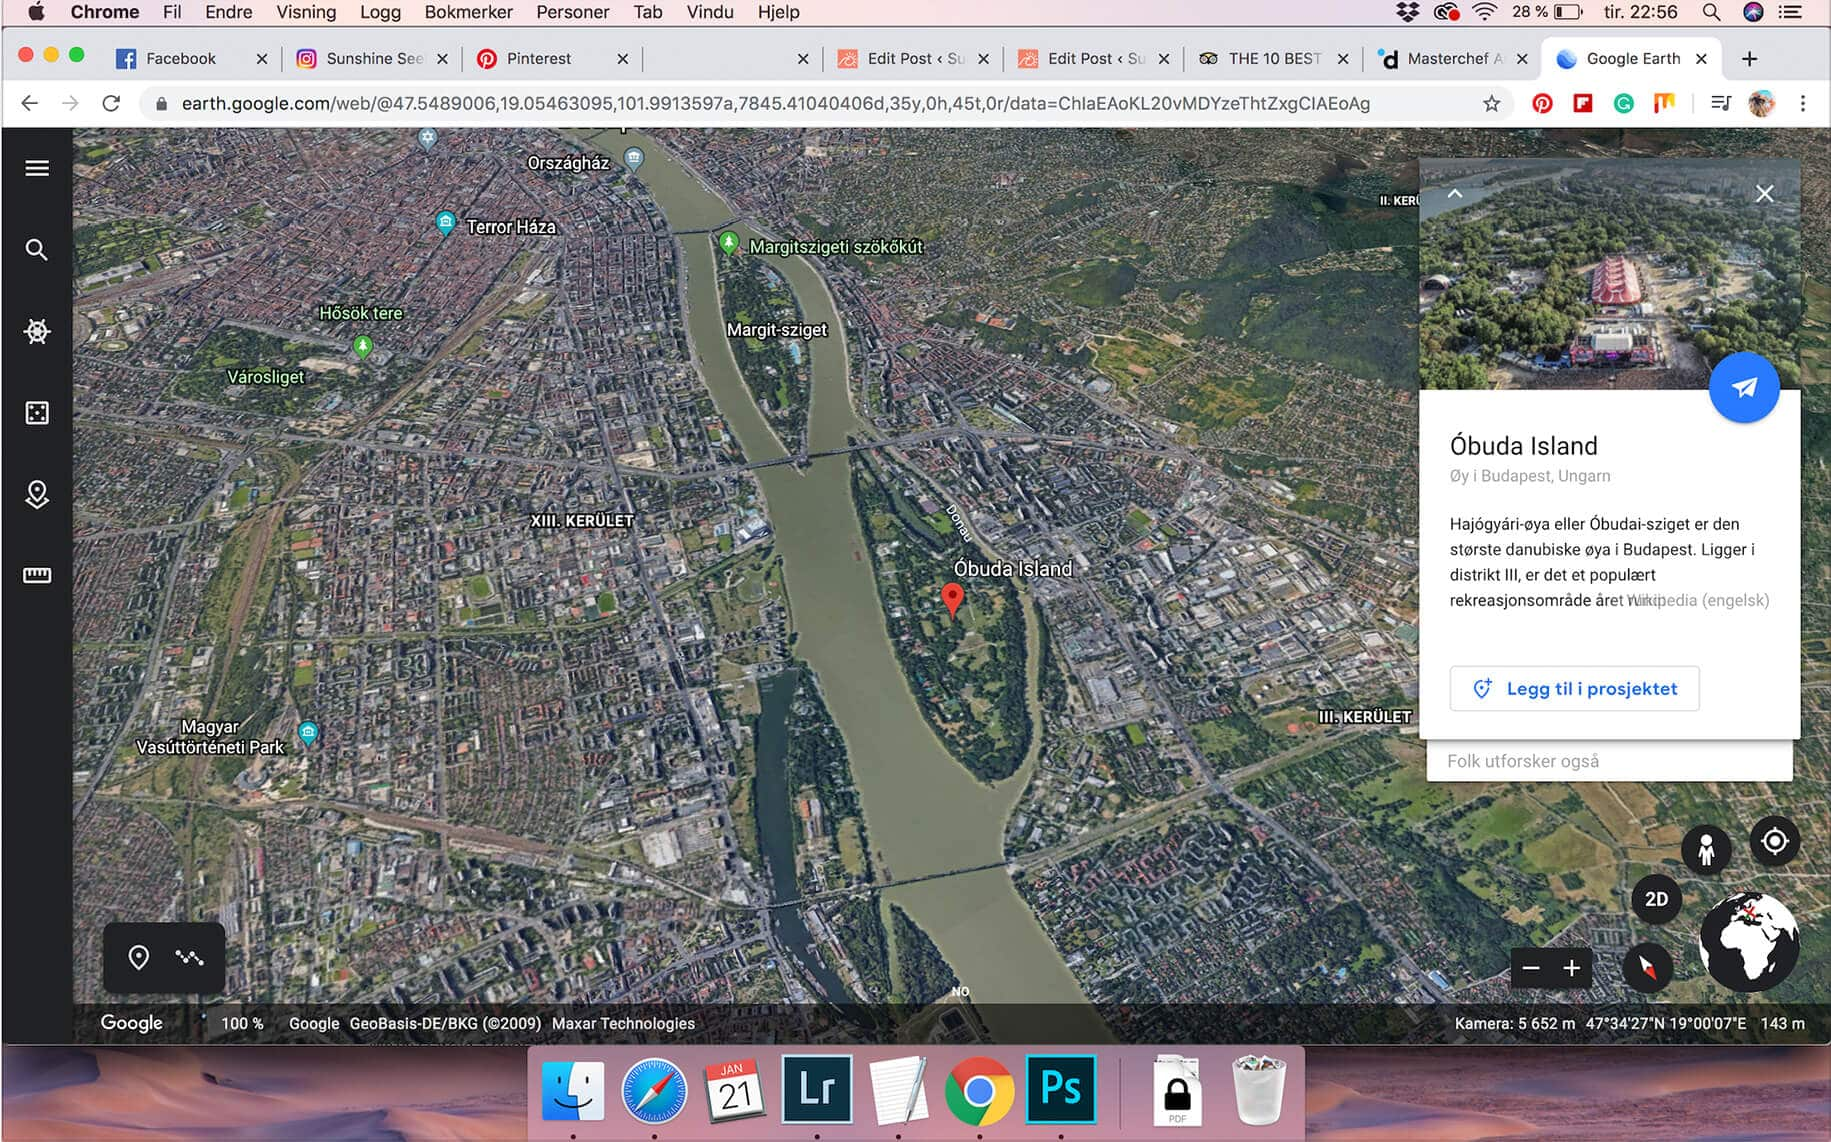 In an effort to be more spontaneous we let Google Earth choose our destination - And we ended up in Budapest